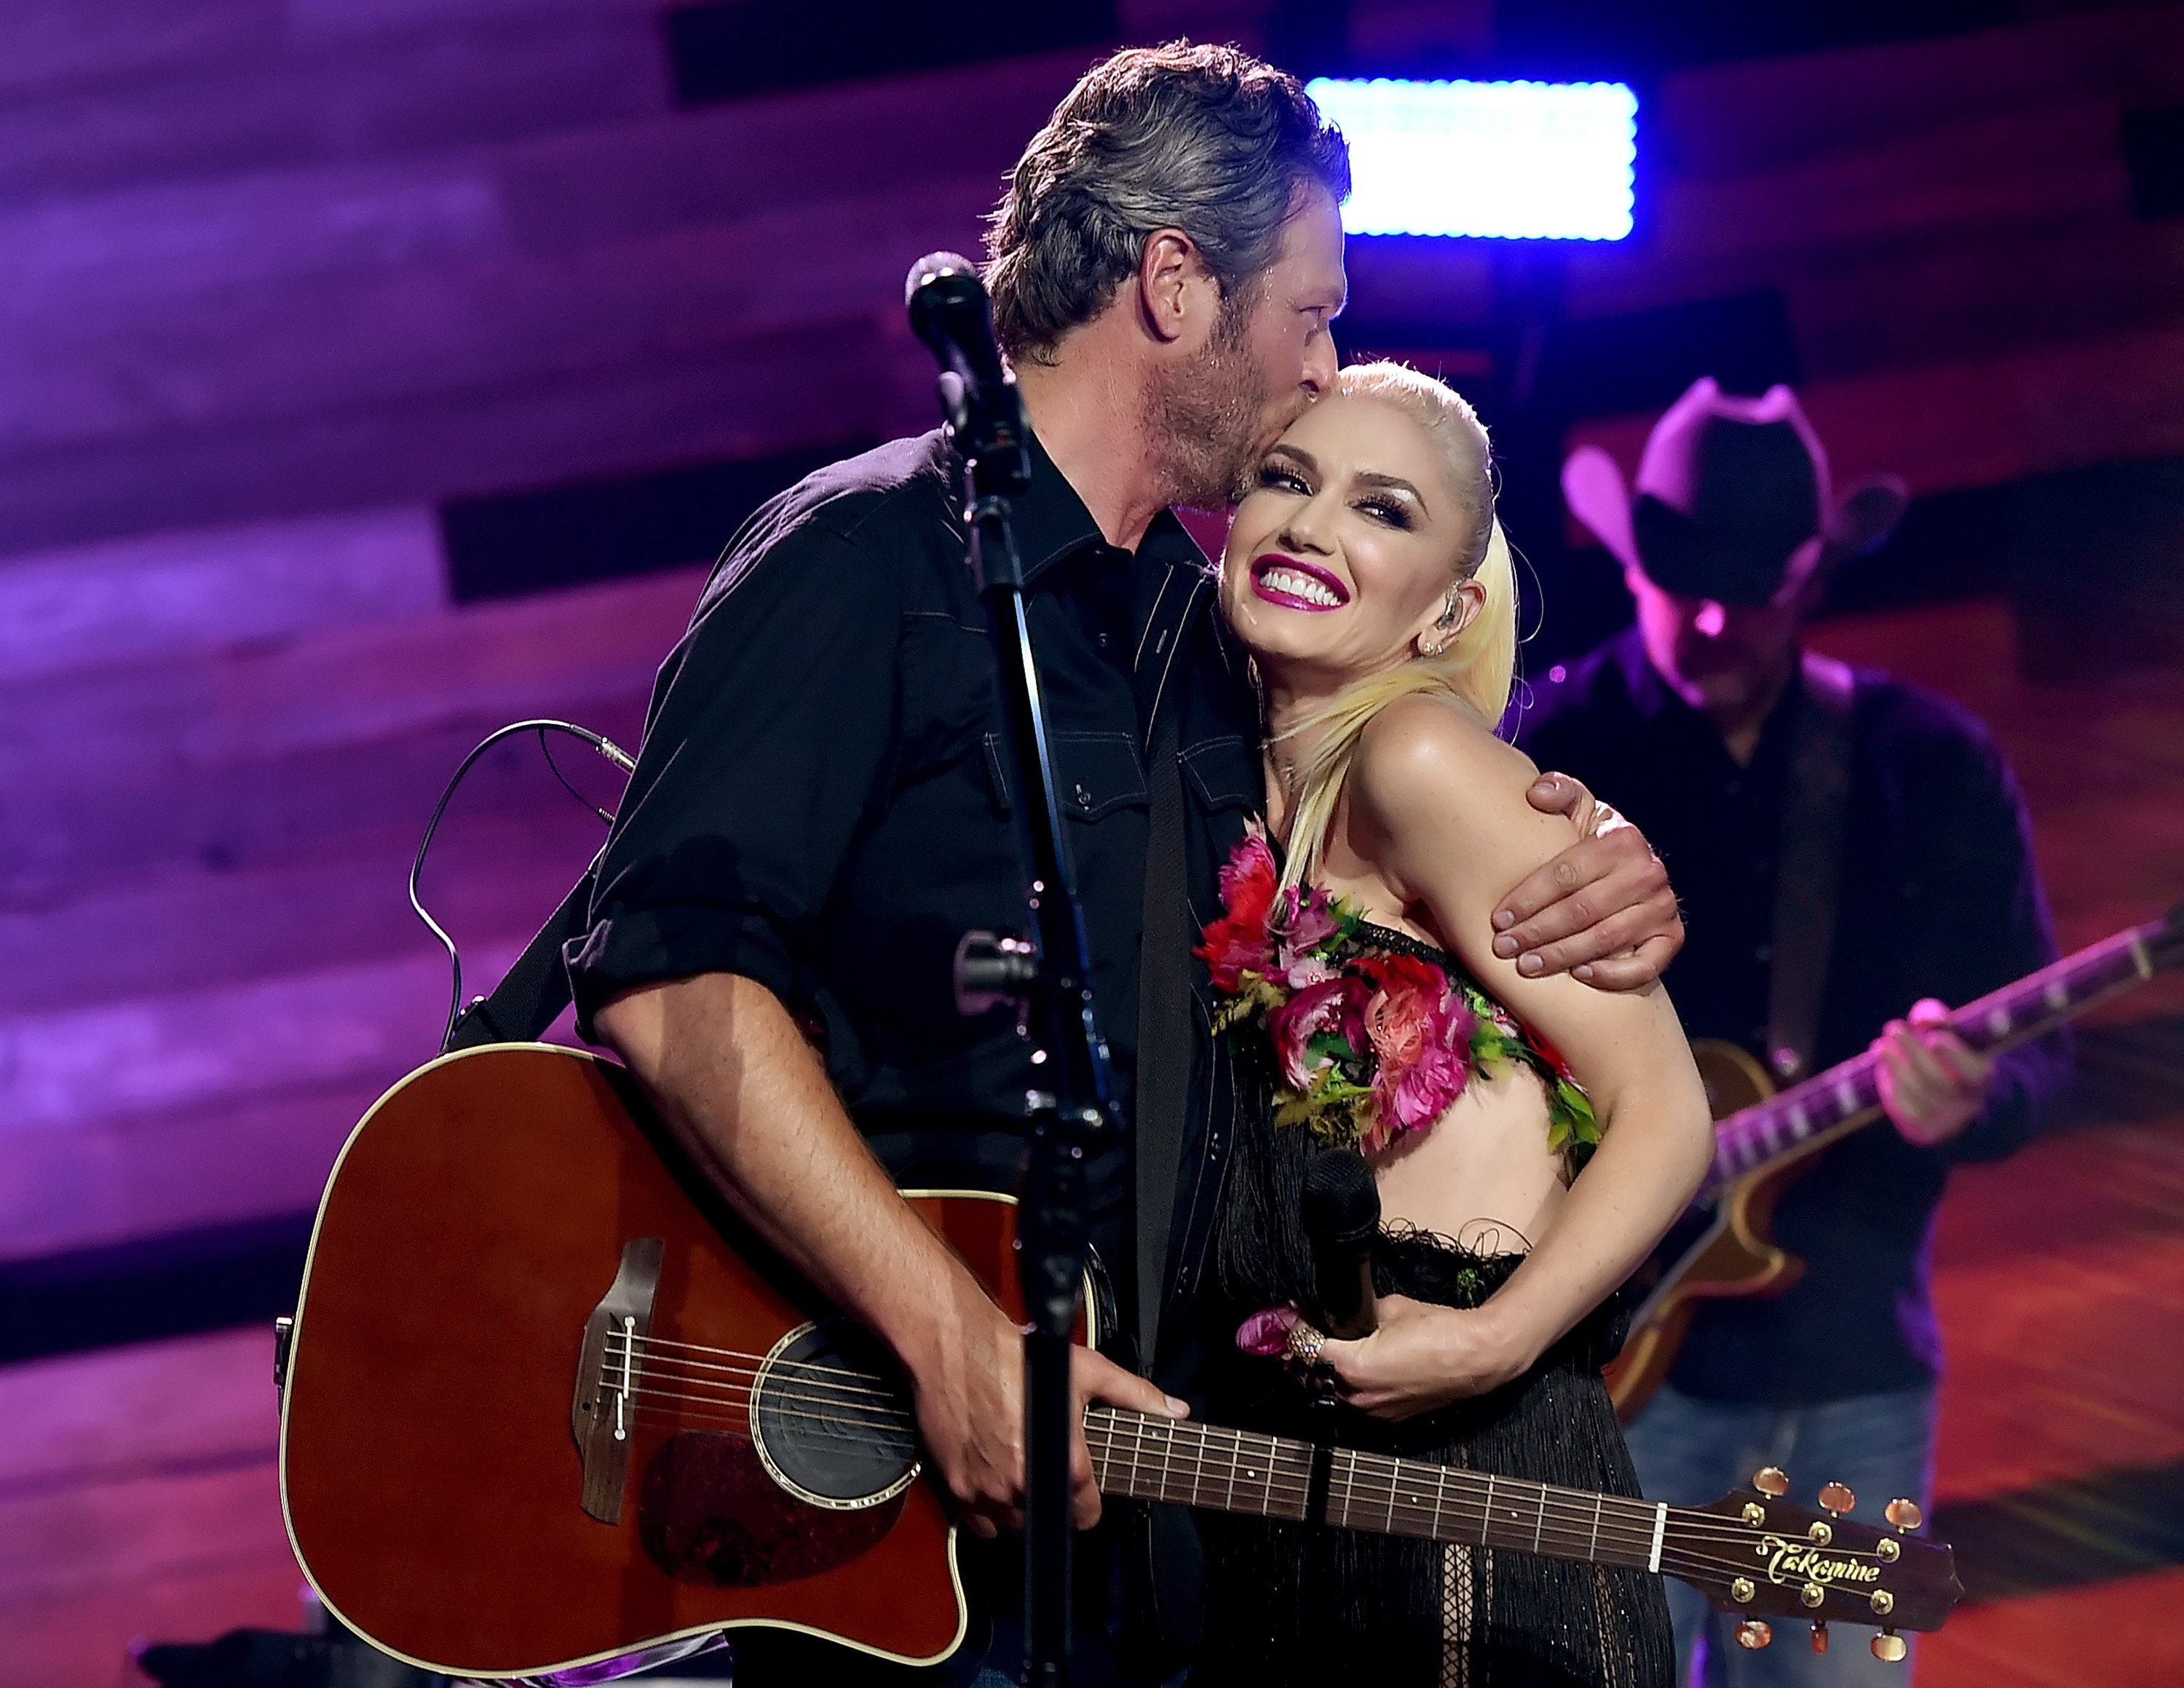 Blake Shelton and Gwen Stefani perform on the Honda Stage at the iHeartRadio Theater on May 9, 2016 in Burbank, California | Photo: Getty Images